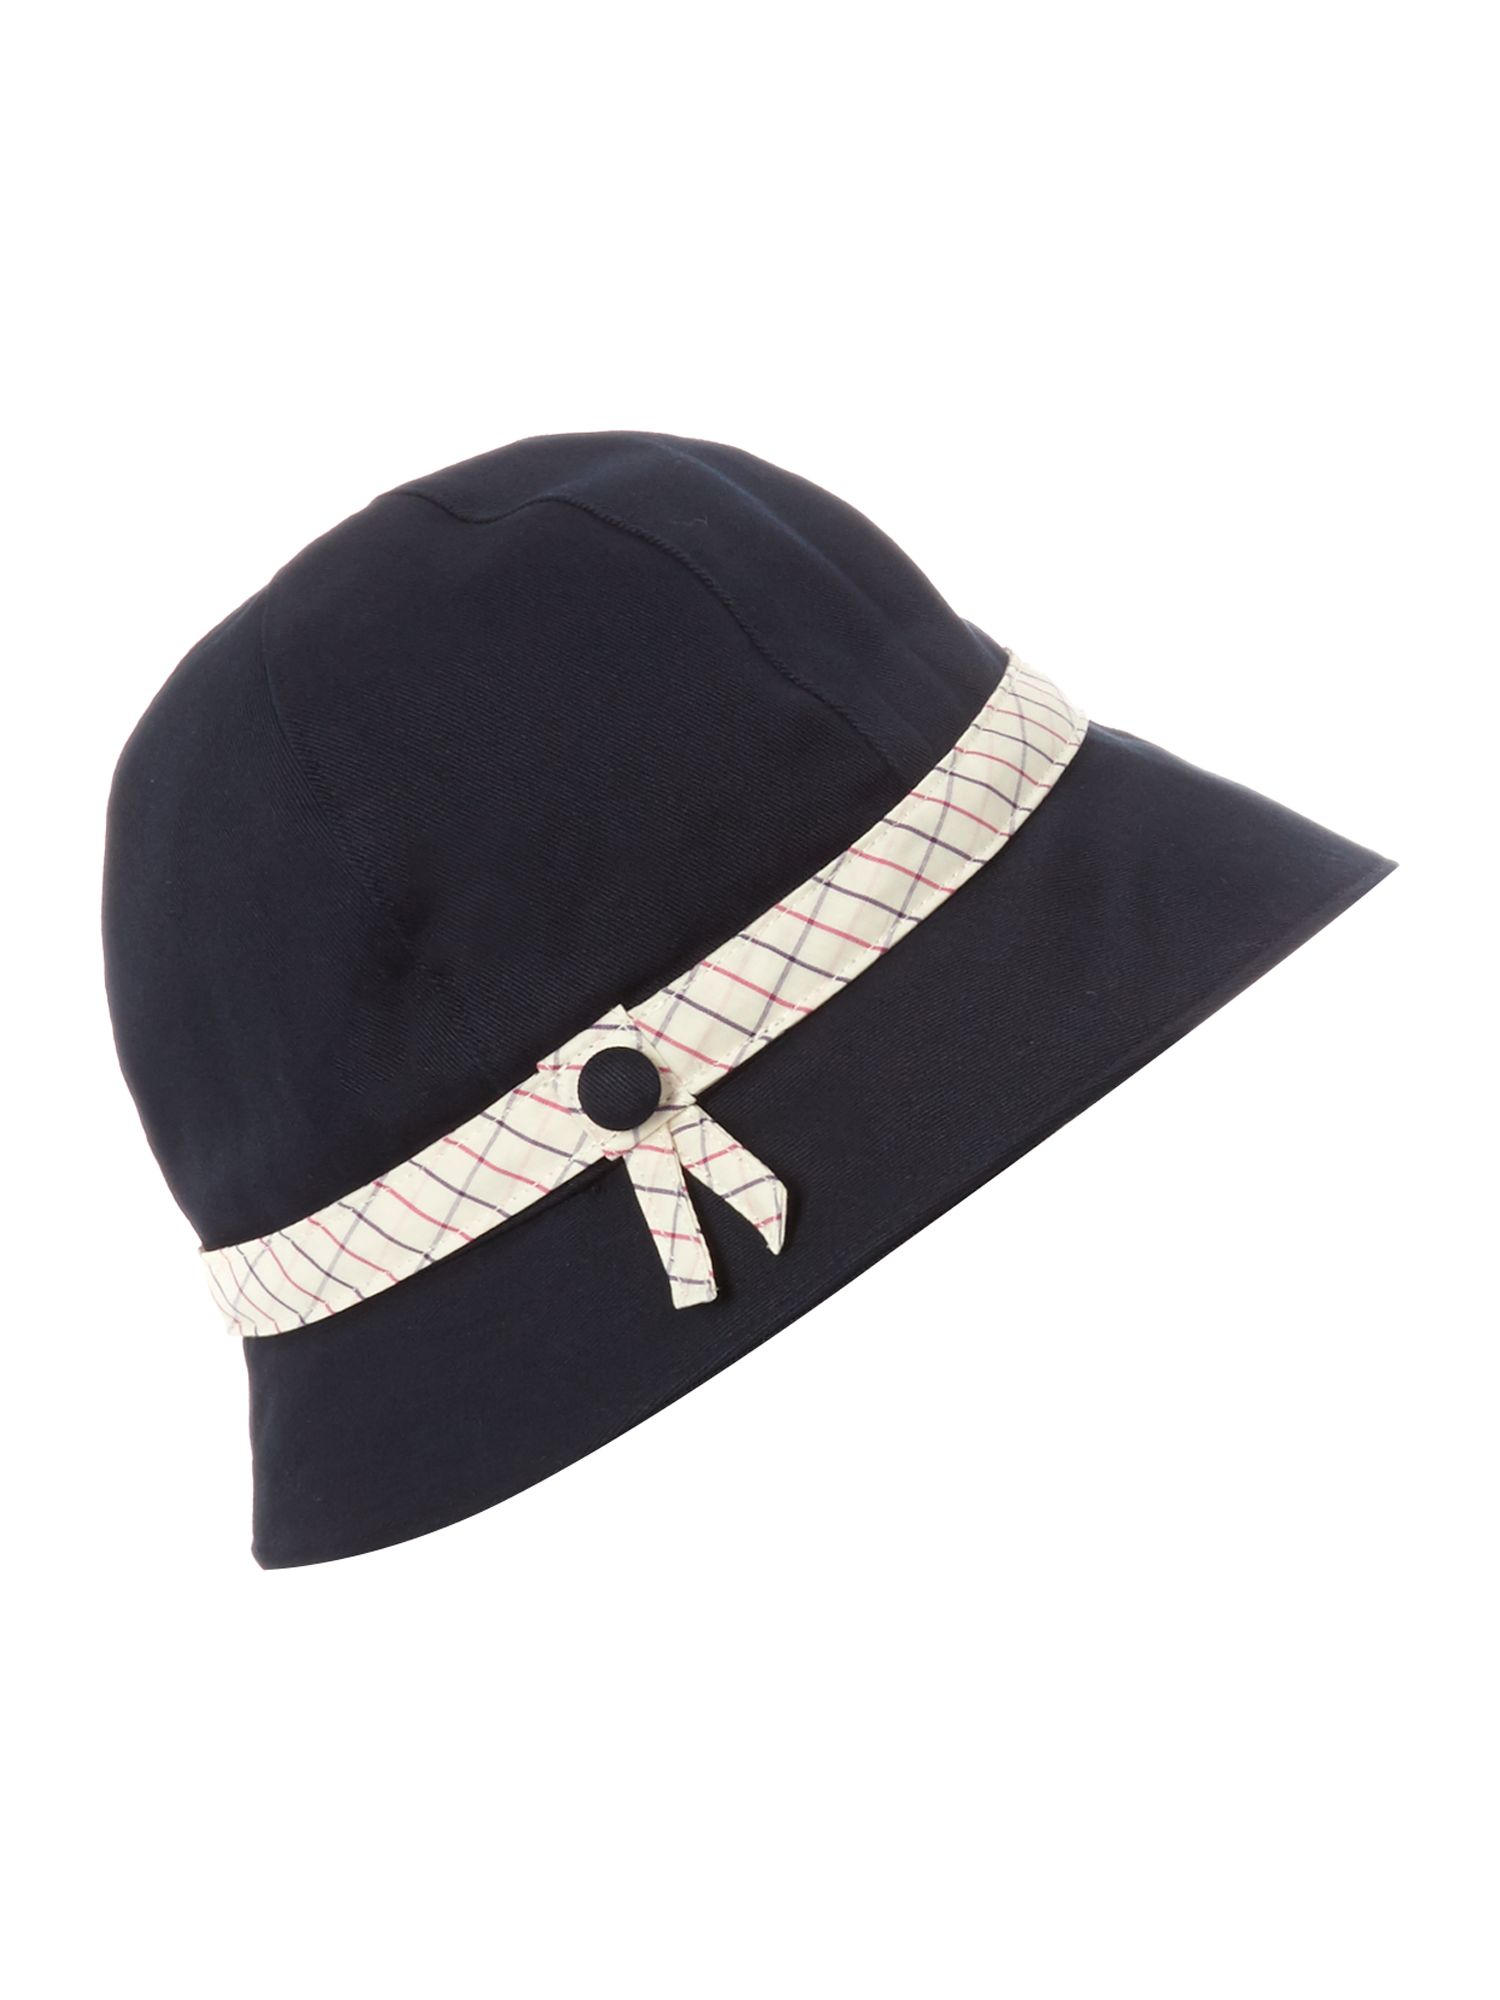 Loriner trench hat